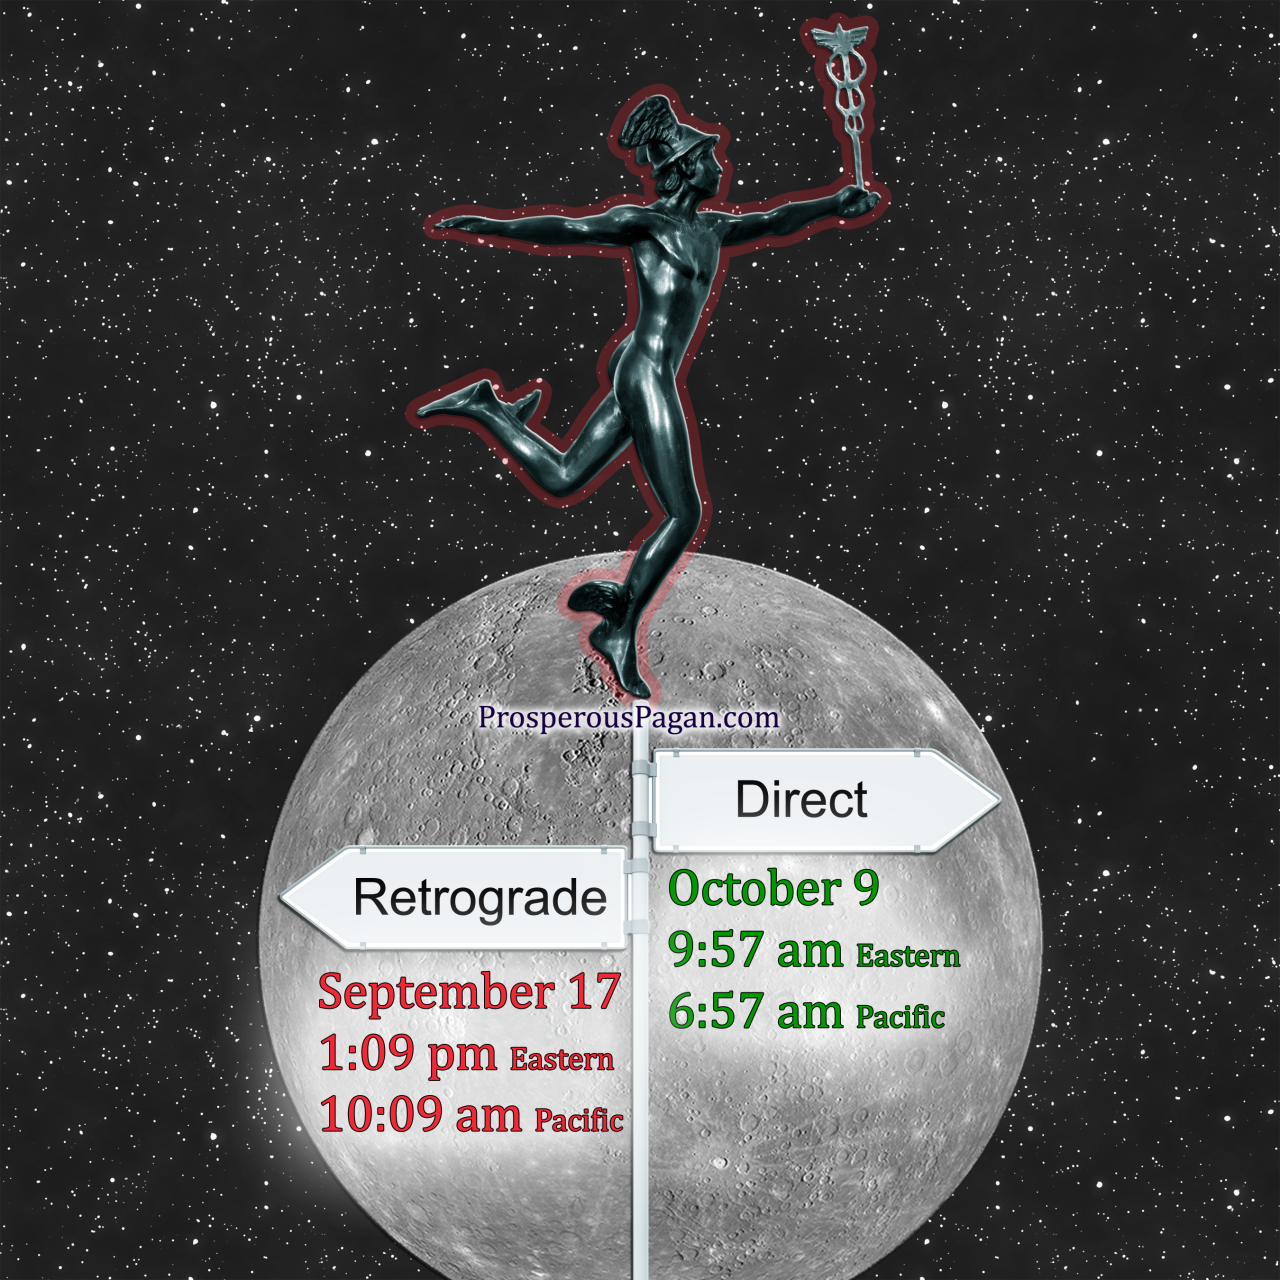 Time to batten down the hatches. Here is an article explaining what that Mercury Retrograde means and what you can expect. http://treeoflifestore.com/mercury_retrograde.html